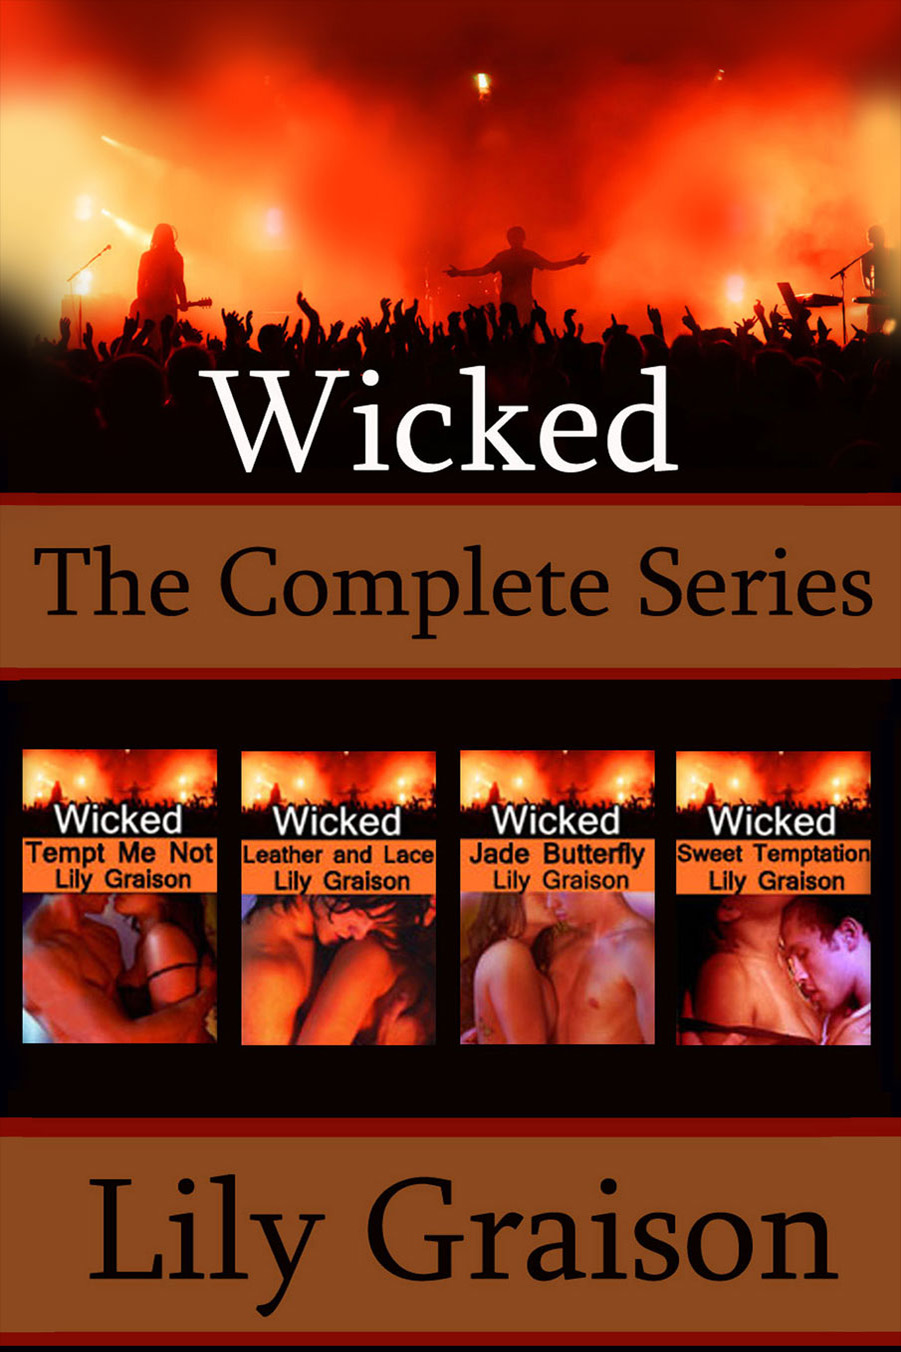 wicked the complete series by lily graison rock star. Black Bedroom Furniture Sets. Home Design Ideas